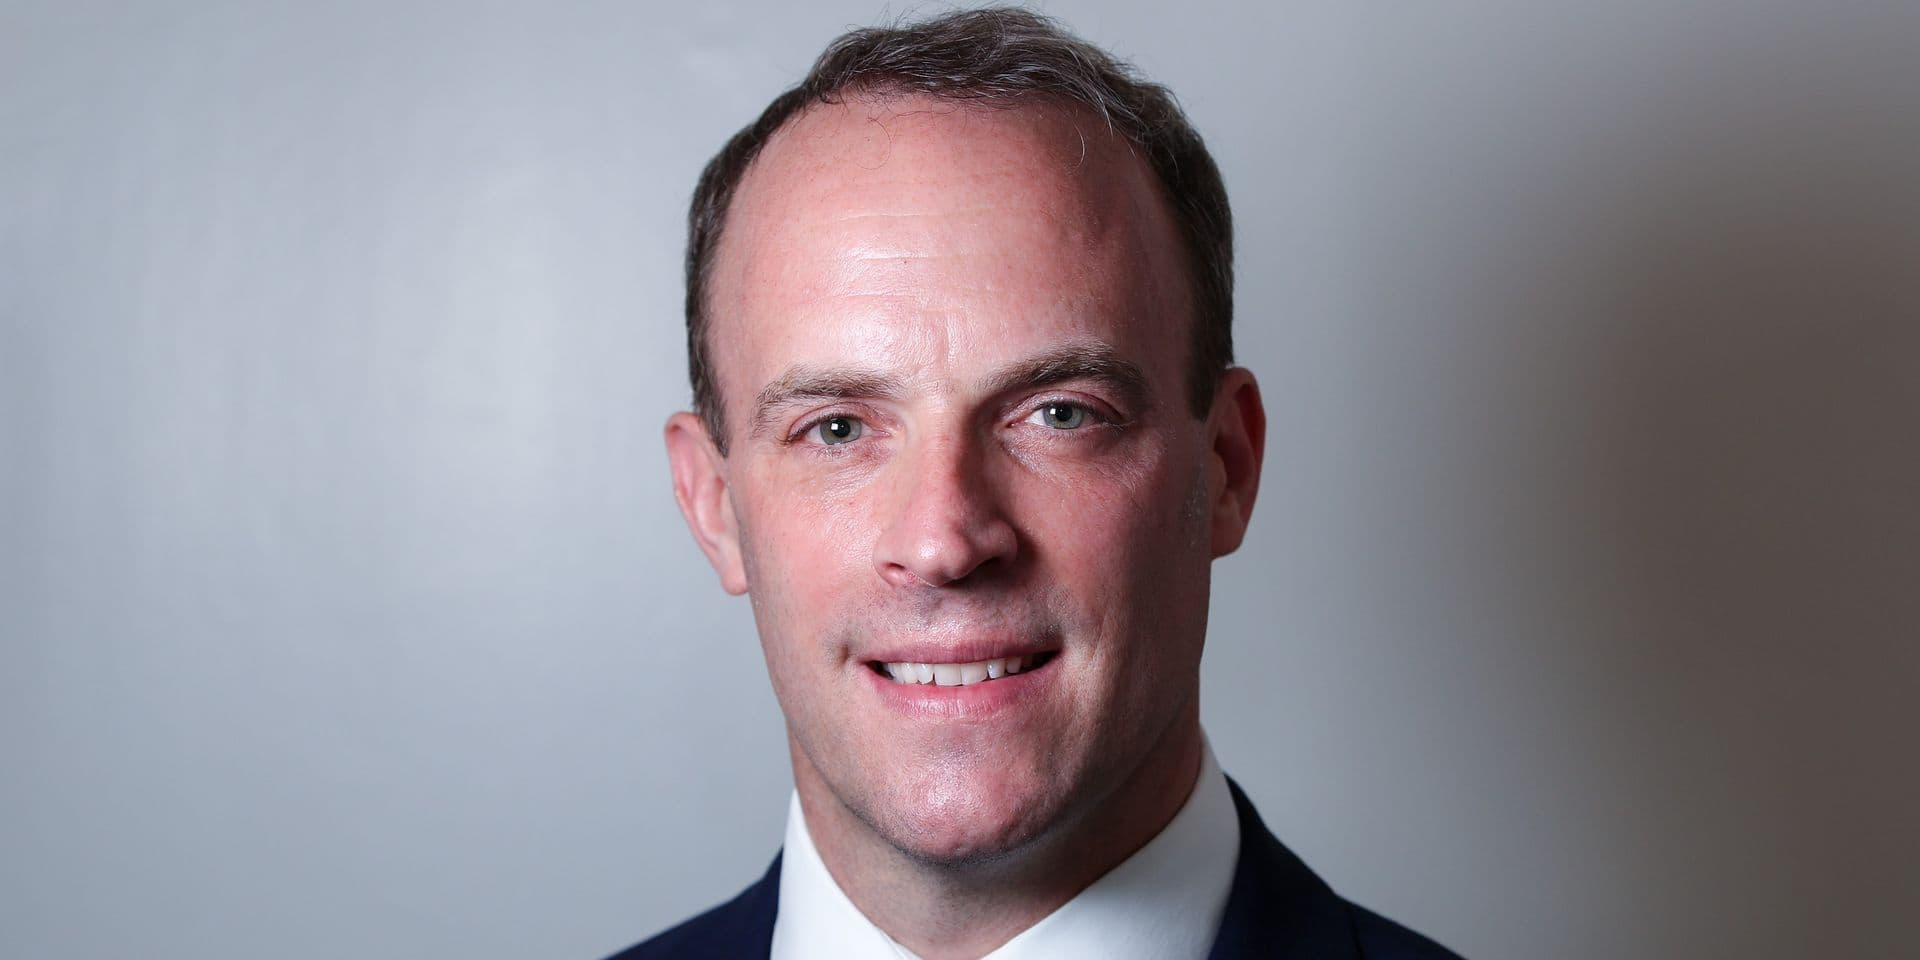 Rt Hon Dominic Raab MP appointed Secretary of State for Foreign and Commonwealth Affairs, and First Secretary of State